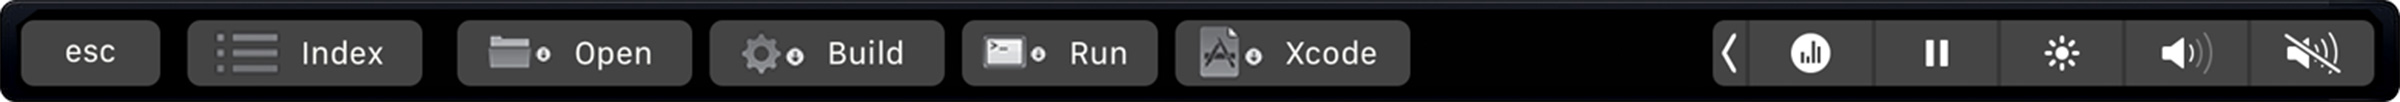 perfect_touchBar